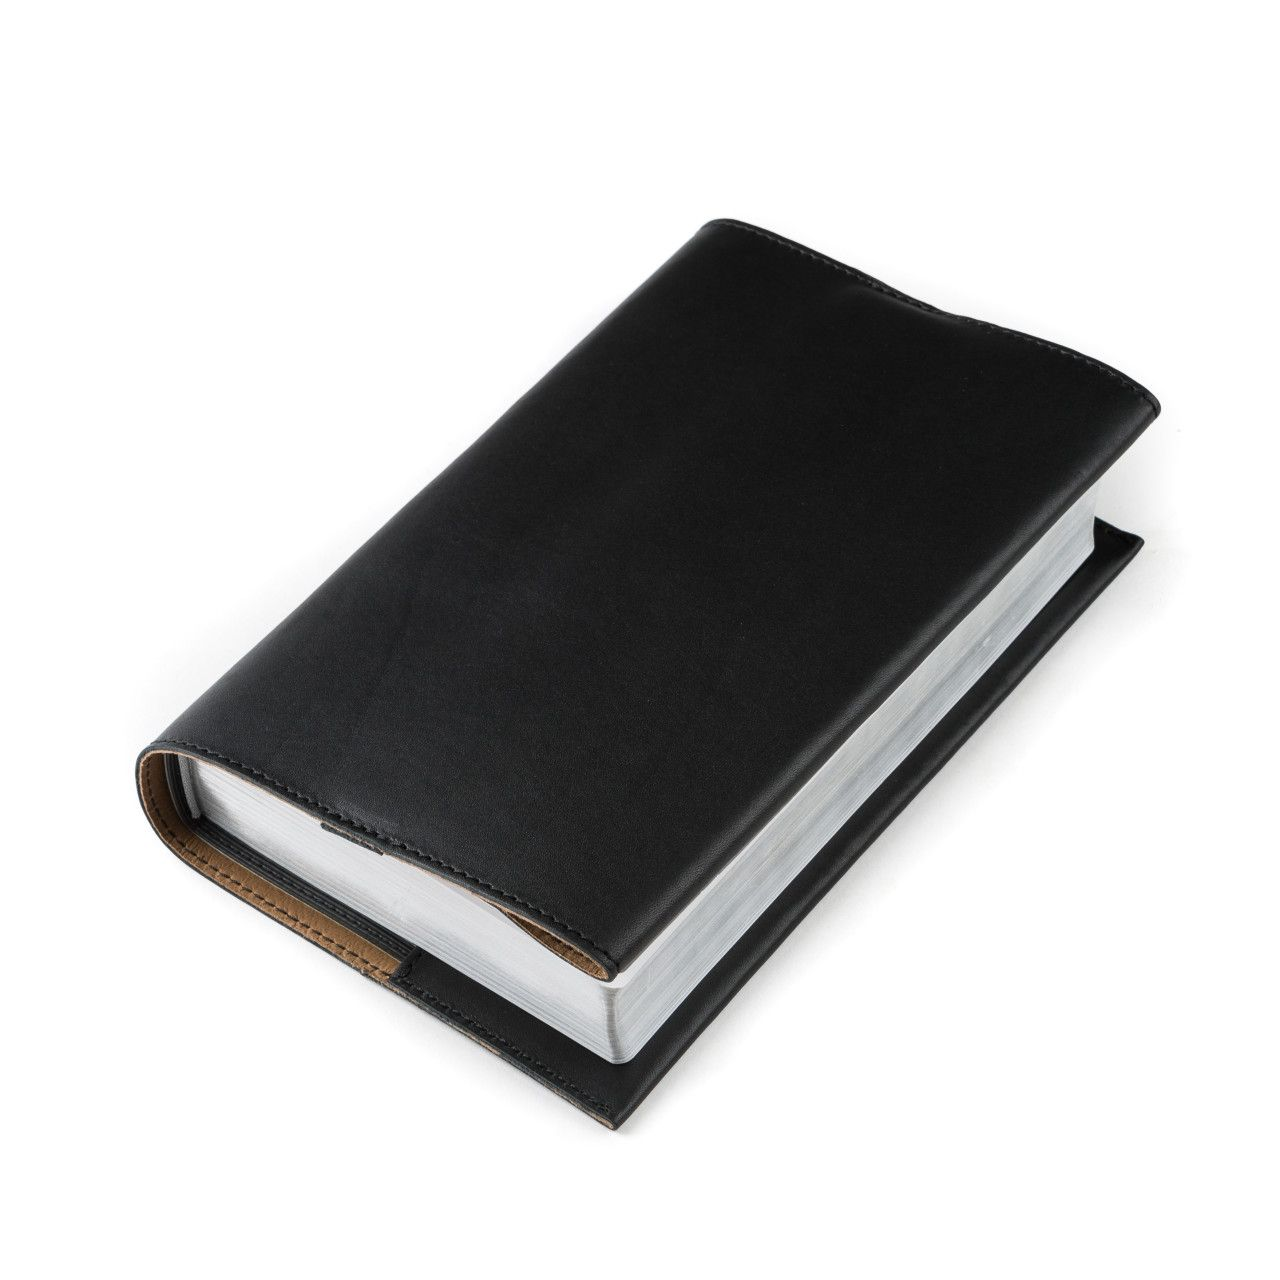 leather book cover medium in black leather